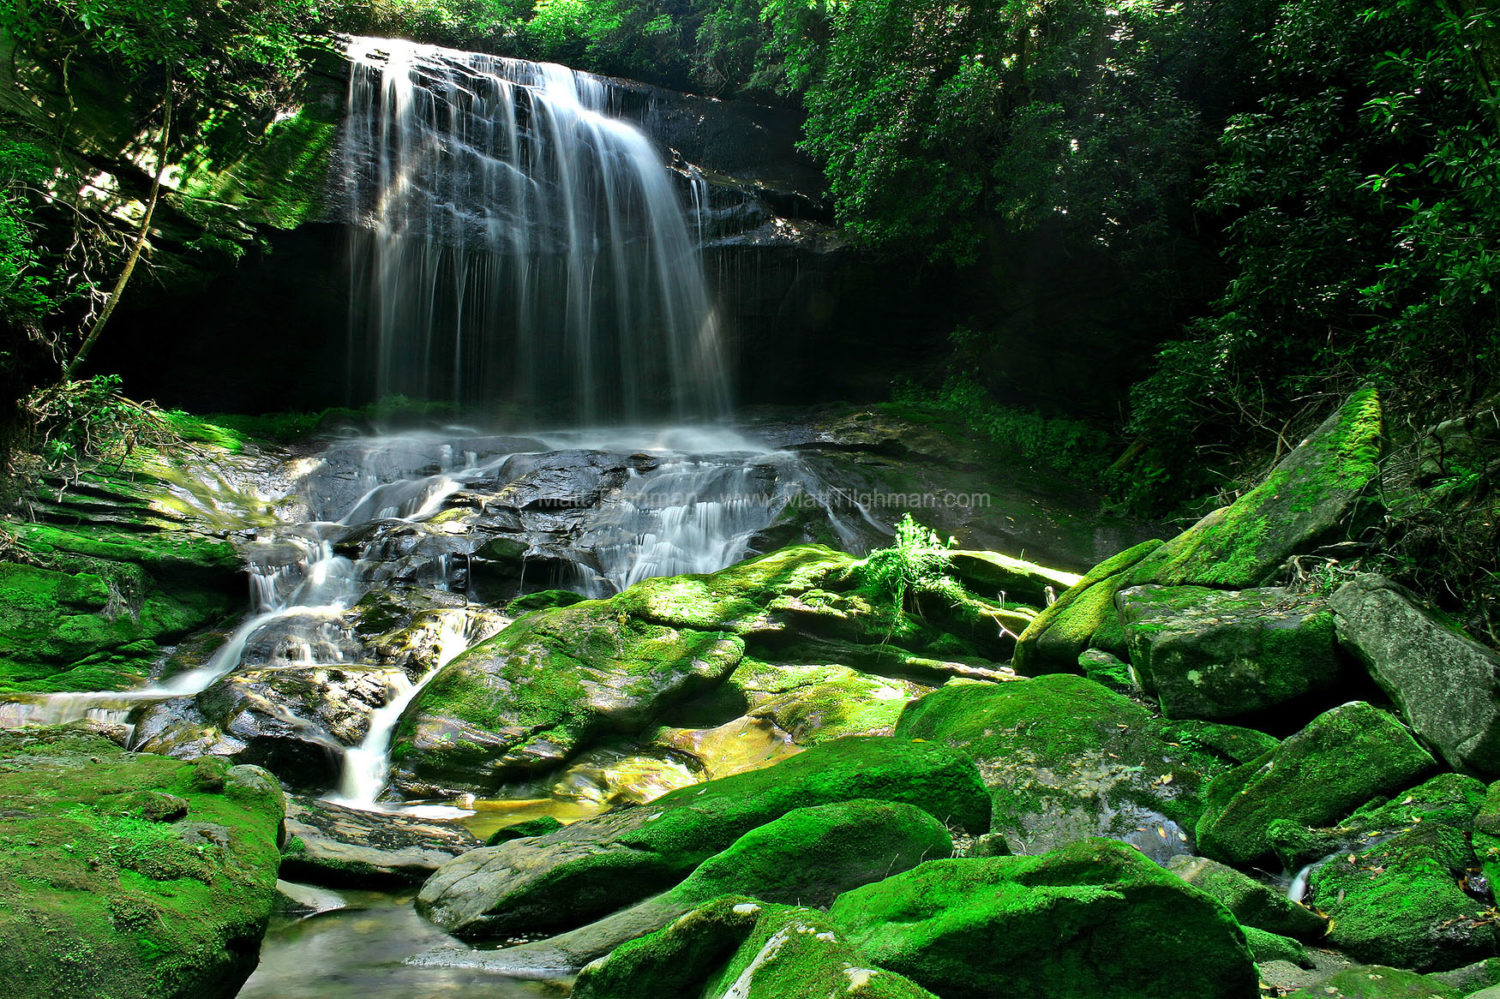 Fine art stock photograph of Charlie Falls, a majestic rocky waterfall in the Glenville area of Western North Carolina.